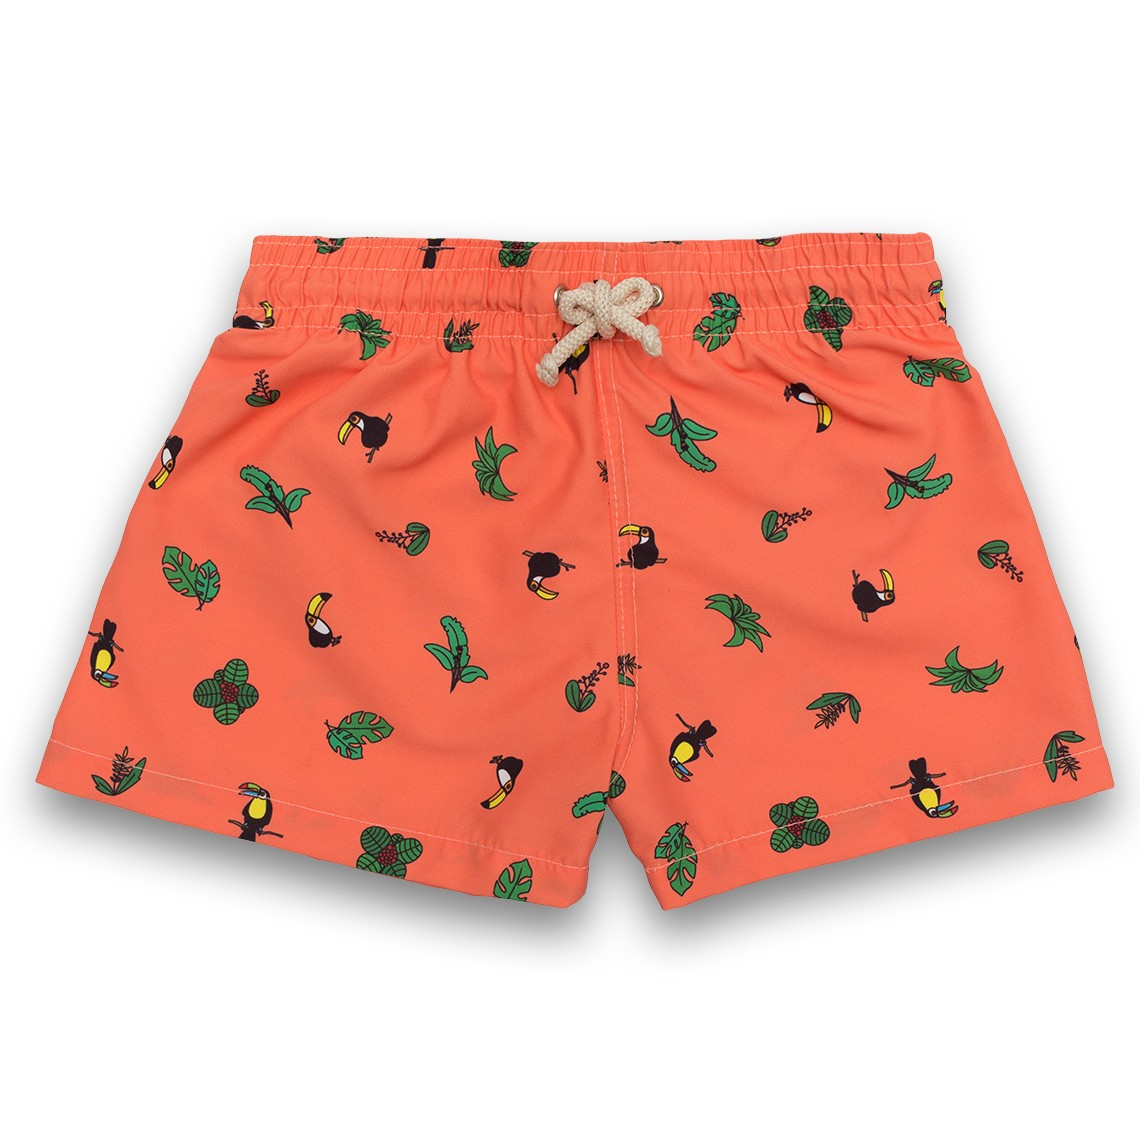 b11302a853 Boy Swim short Coral Toucans 2 to 6 years - Ocoly